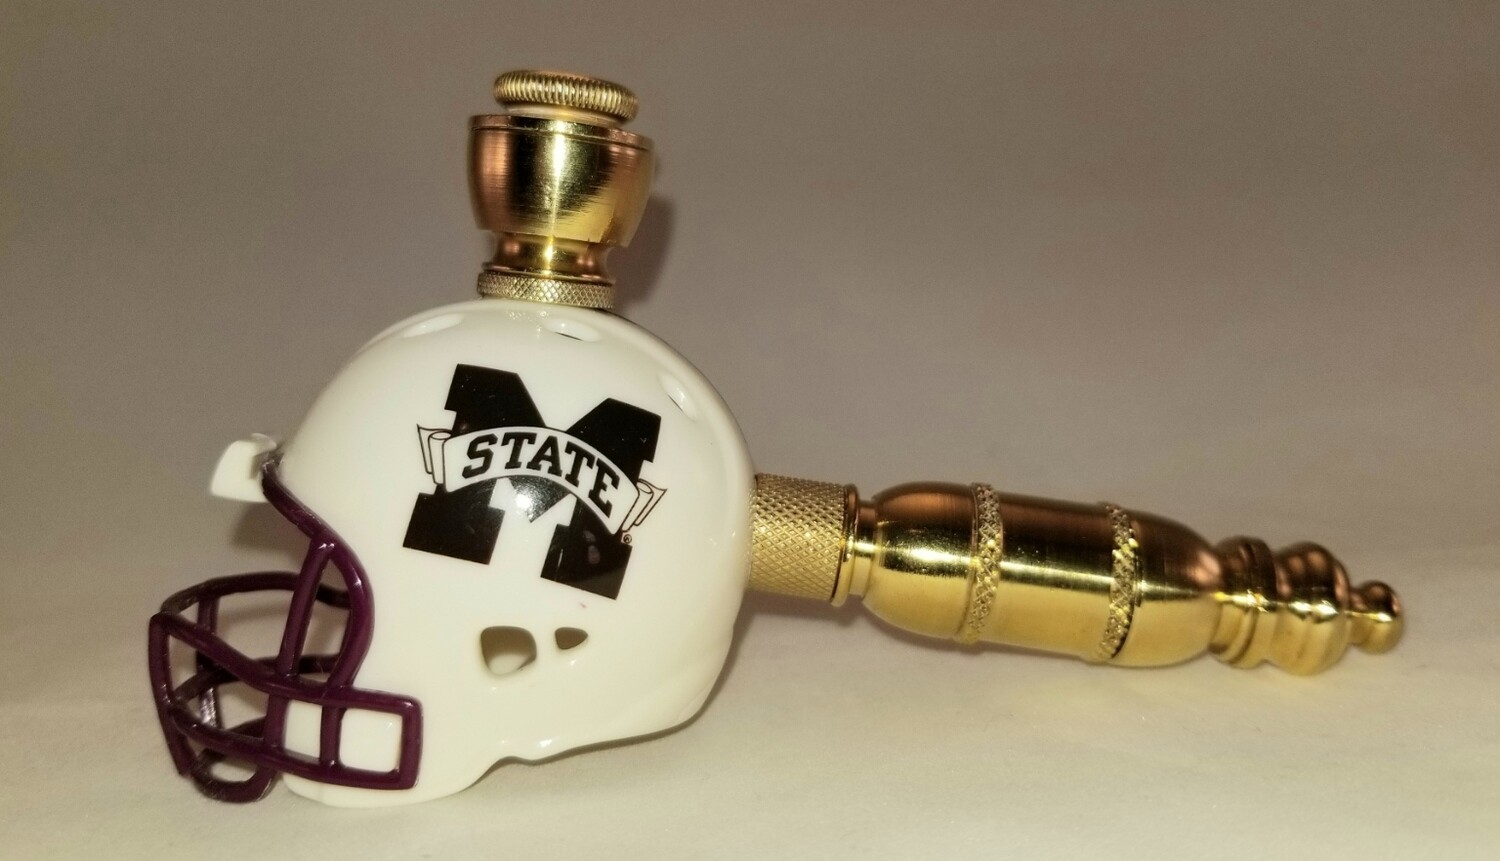 MISSISSIPPI STATE BULLDOGS FOOTBALL HELMET SMOKING PIPE Straight/Brass